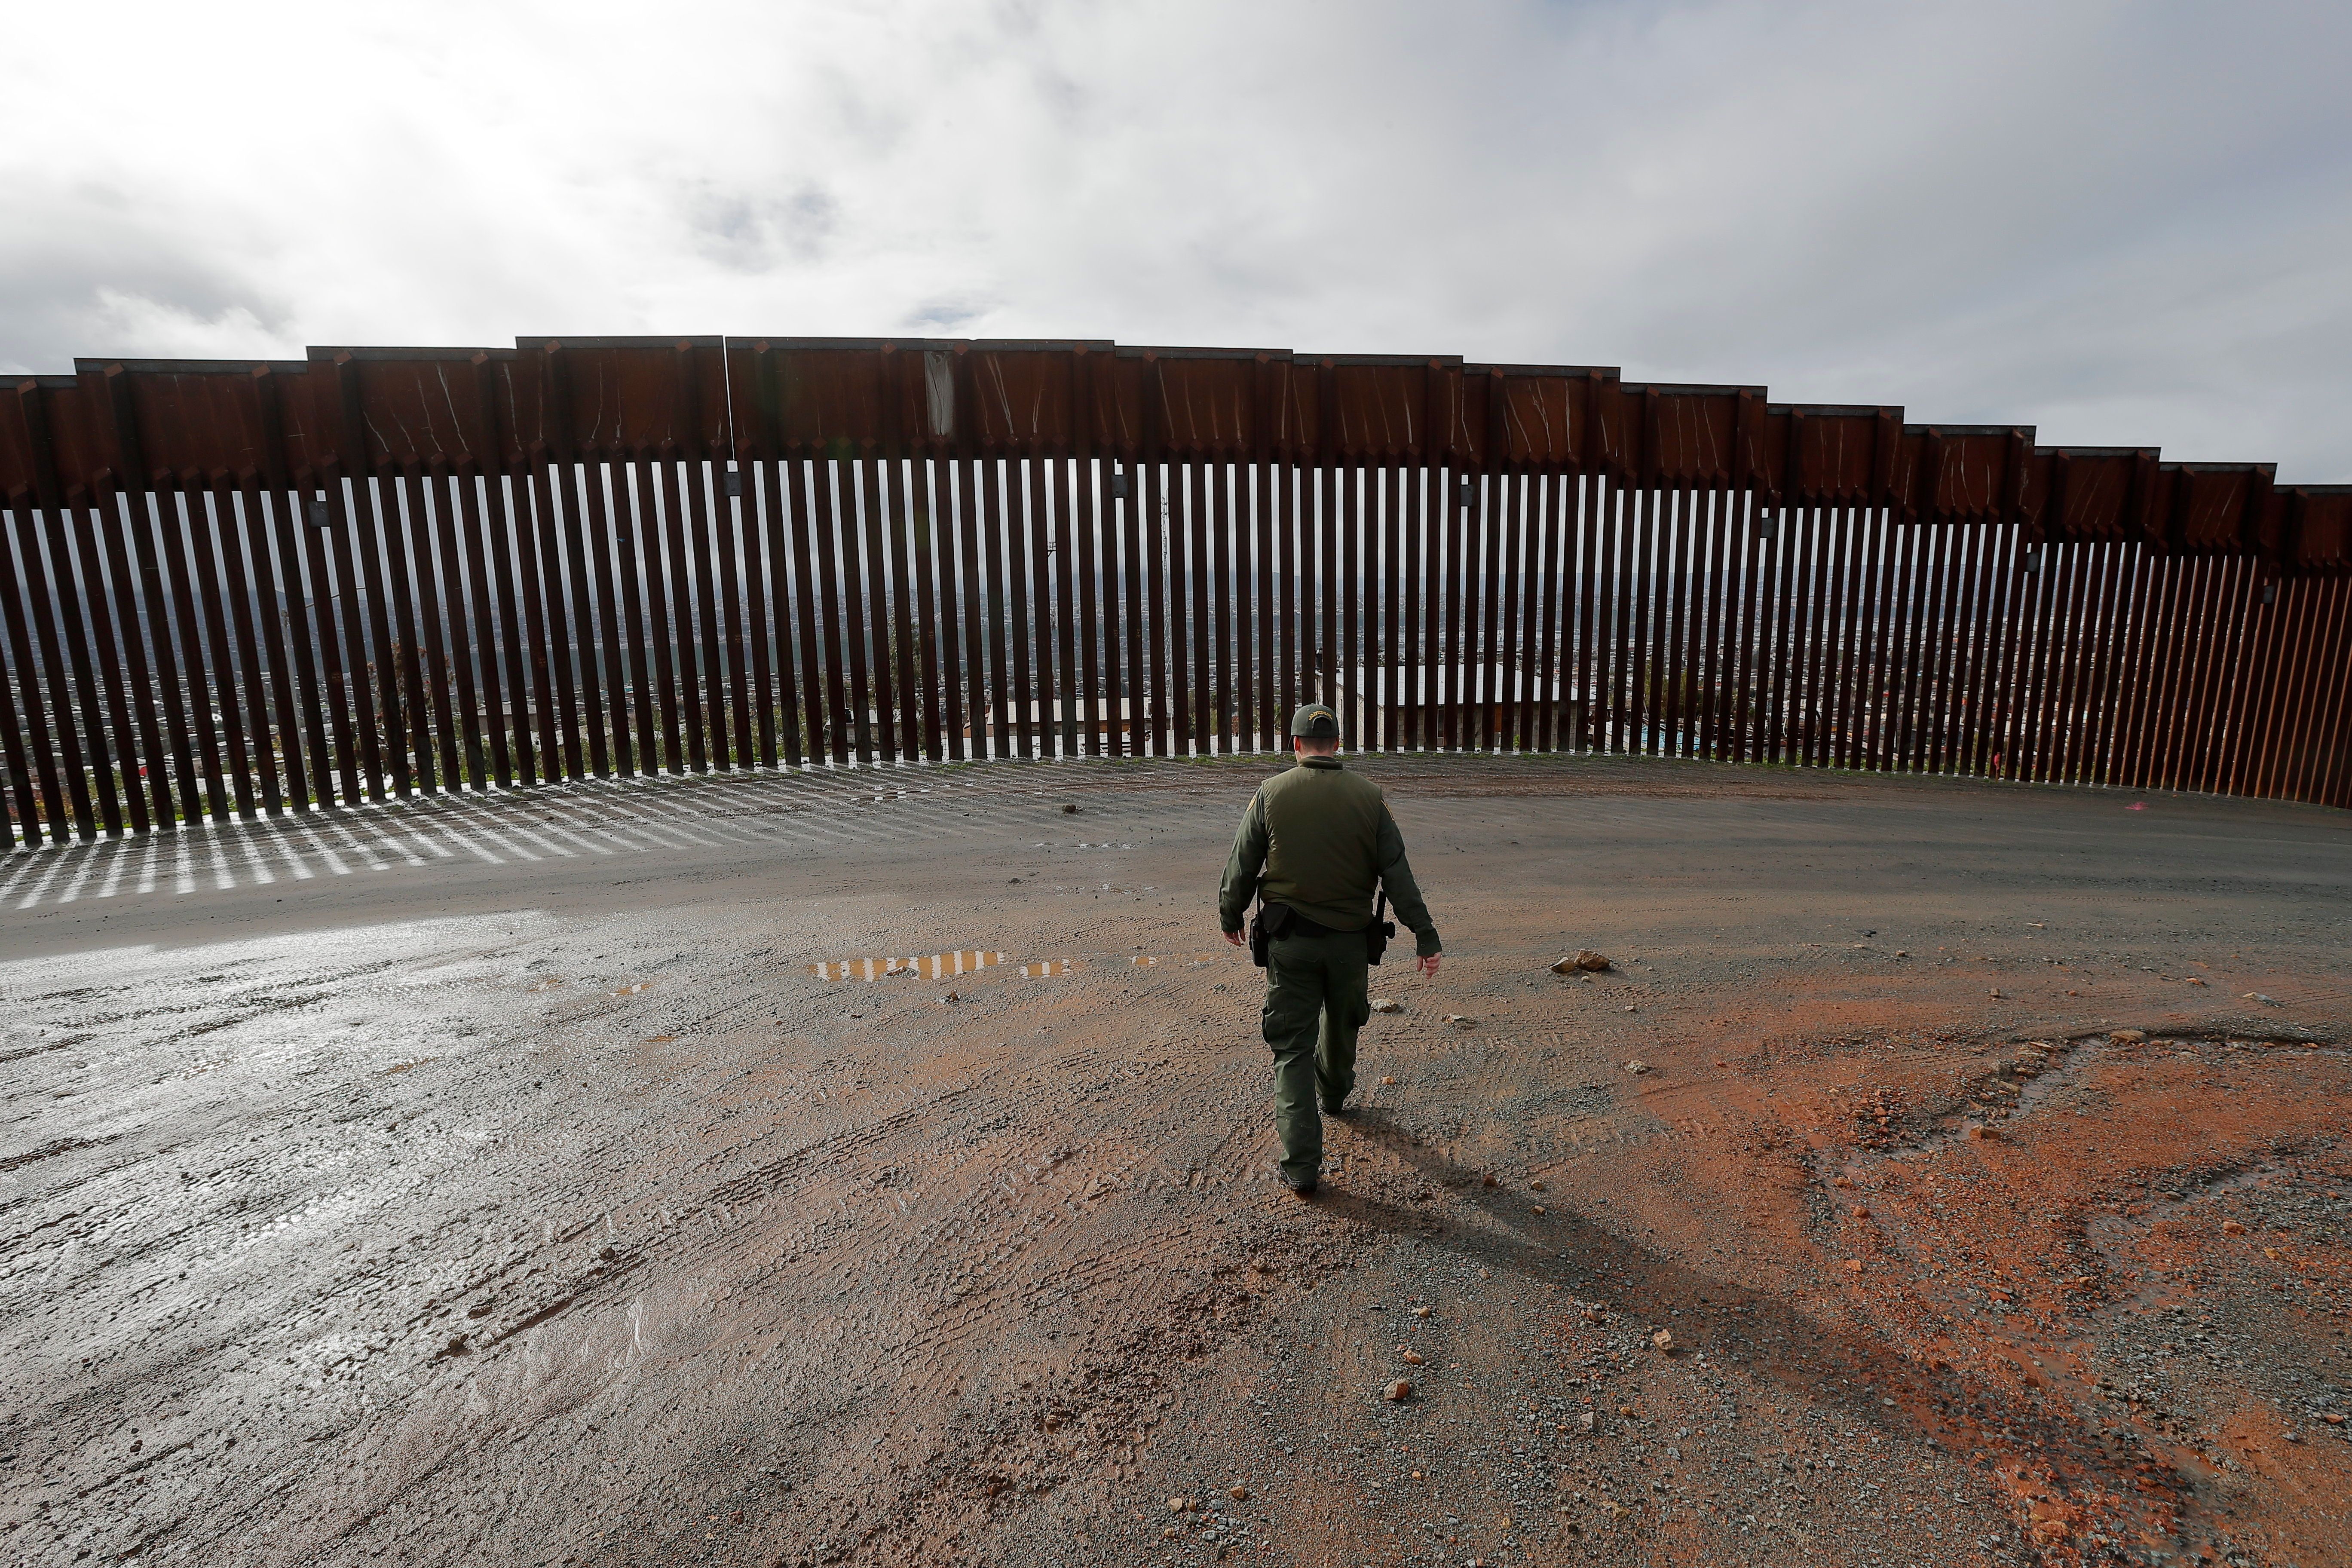 Border Patrol agent Vincent Pirro looks on near a border wall that separates the cities of Tijuana, Mexico, and San Diego, Tuesday, Feb. 5, 2019, in San Diego. President Donald Trump is expected to speak about funding for a wall along the U.S.-Mexico border during his State of the Union address Tuesday. (AP Photo/Gregory Bull)